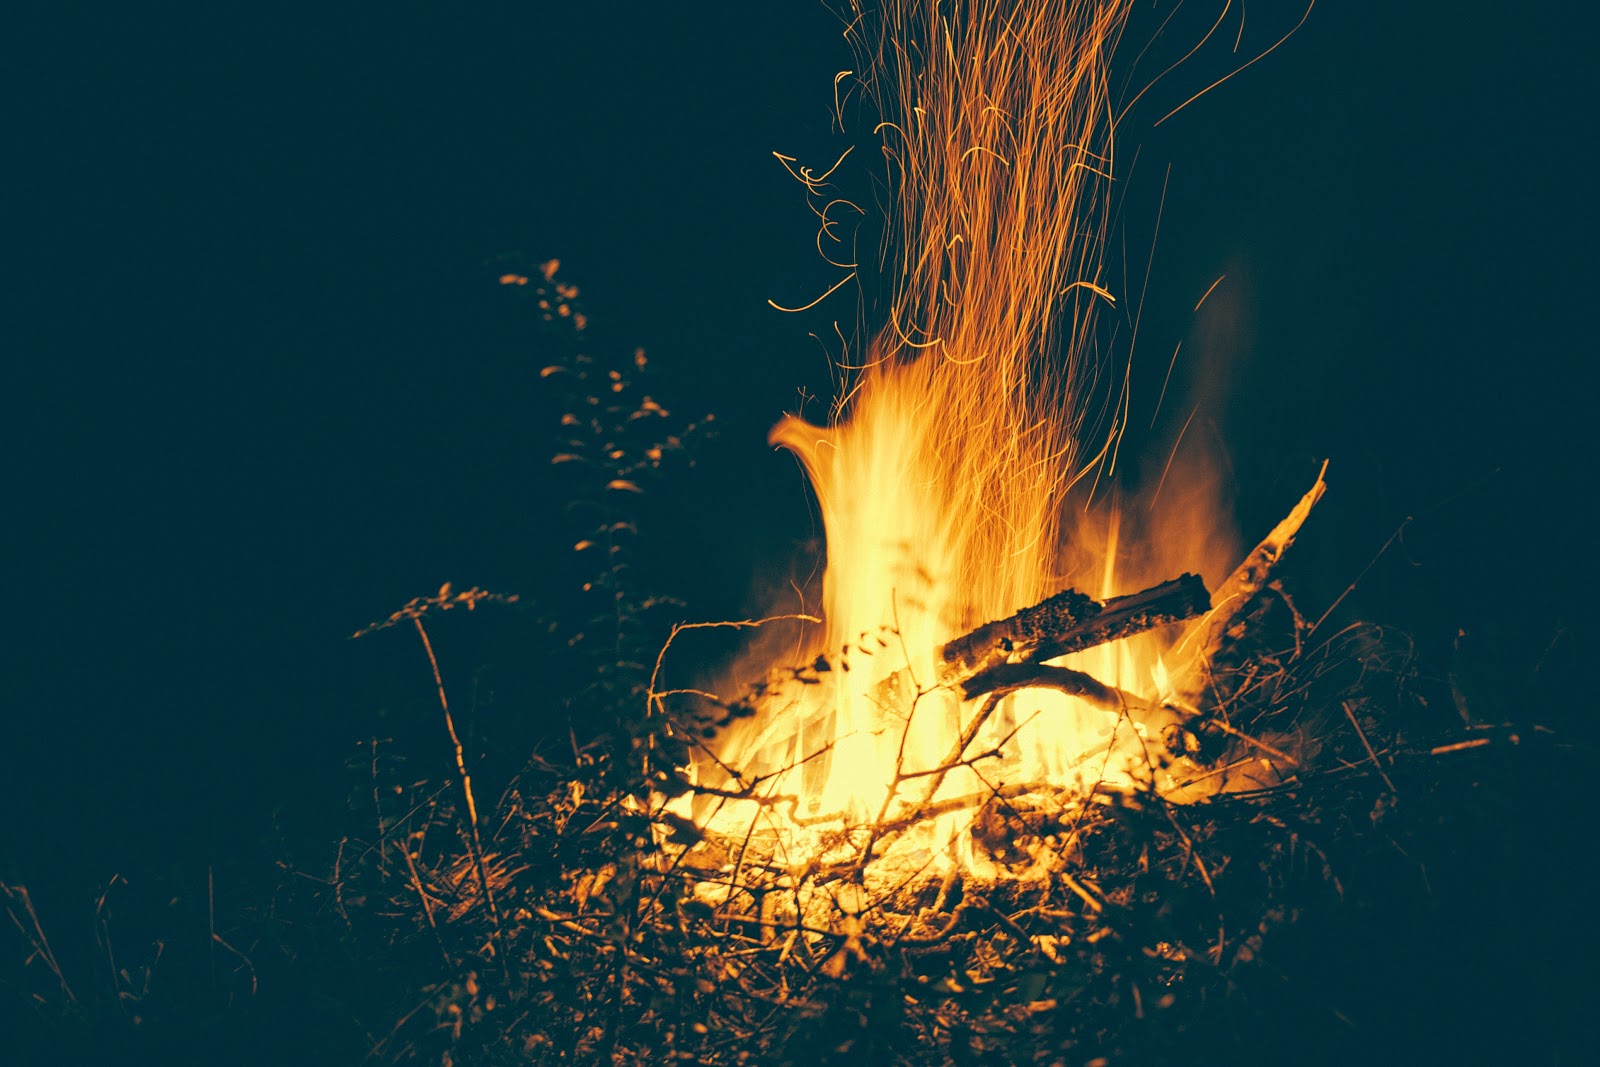 Meán Fómhair (Autumn Equinox) Fire by Gloria Gypsy